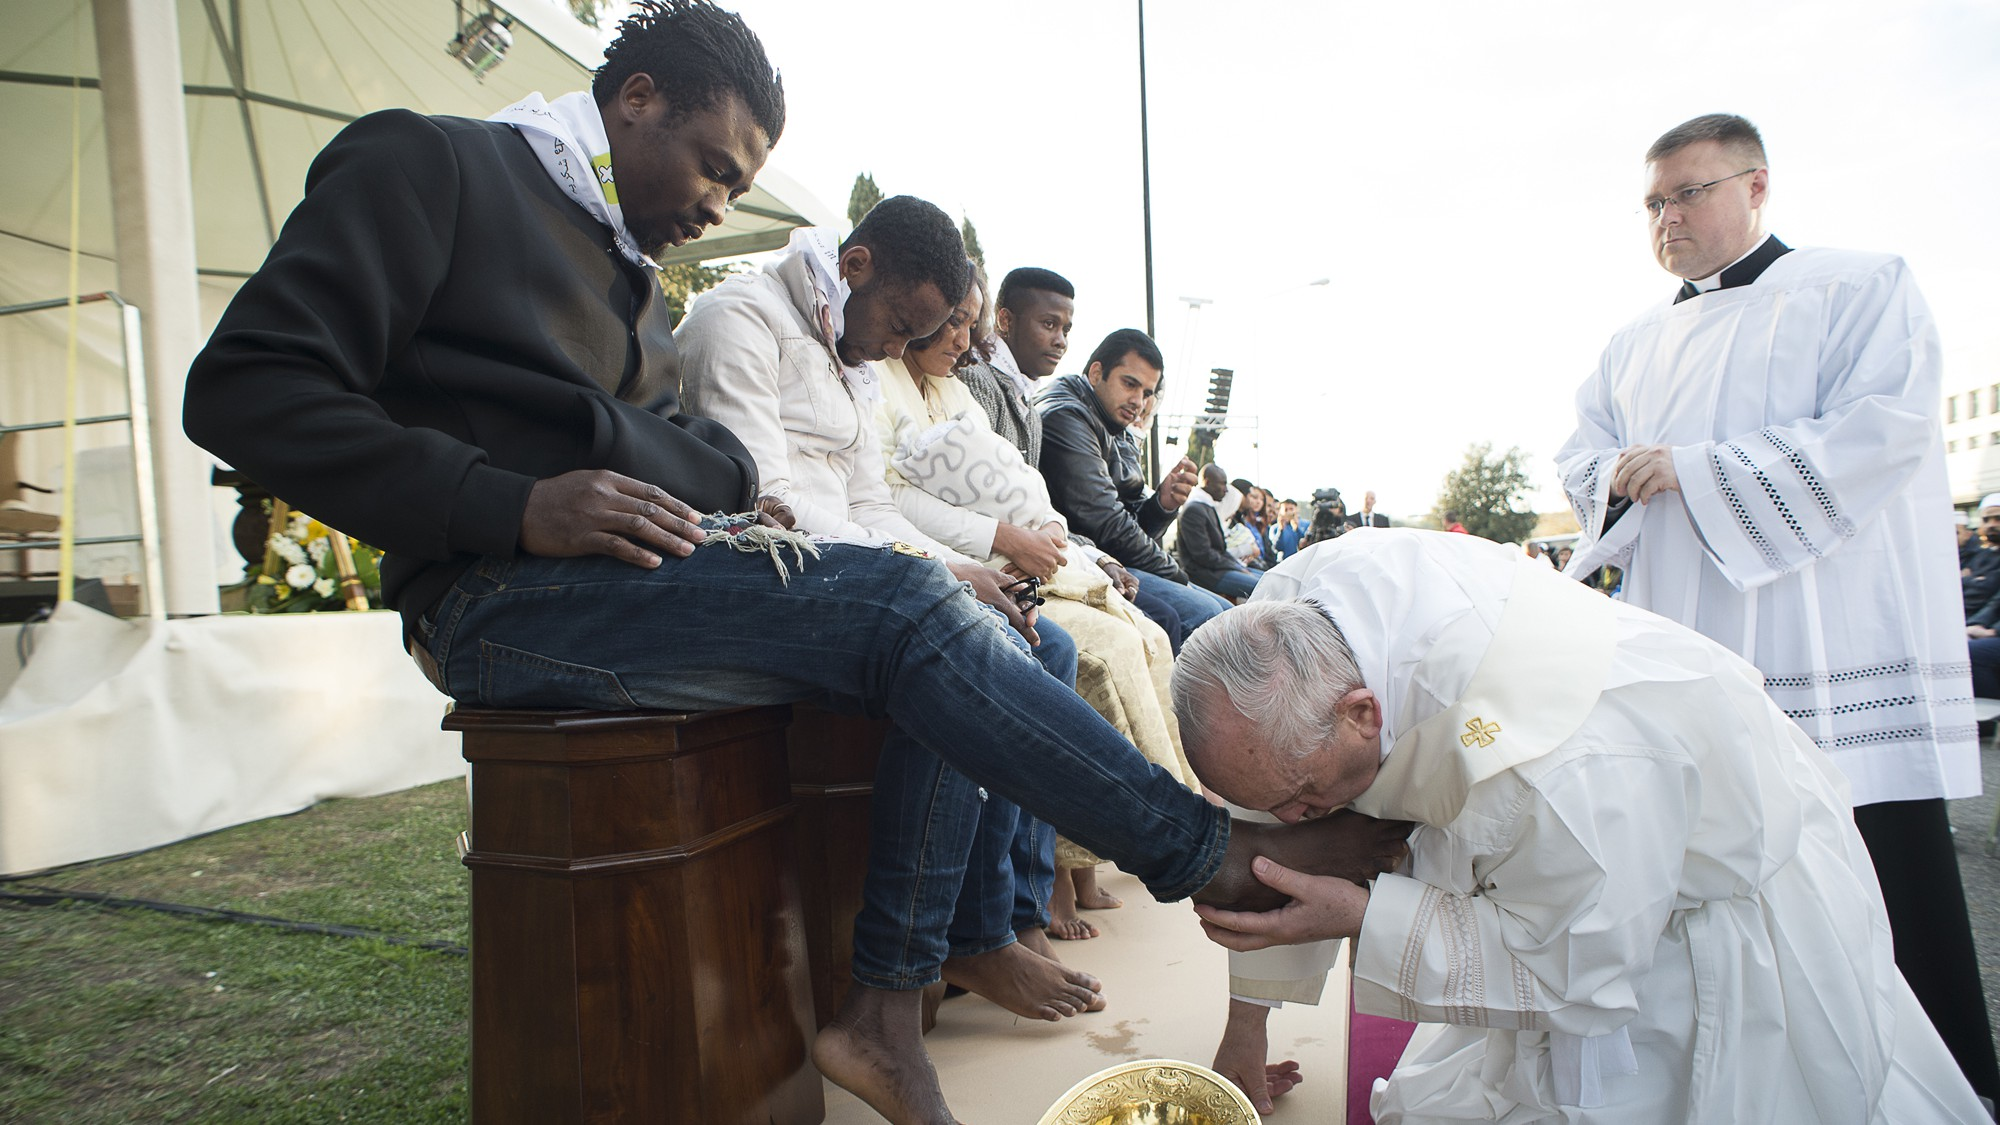 castelnuovo di porto muslim girl personals Pope francis washed and kissed the feet of muslim,  feet of immigrants at holy thursday celebration: 'we are brothers'  castelnuovo di porto, italy.